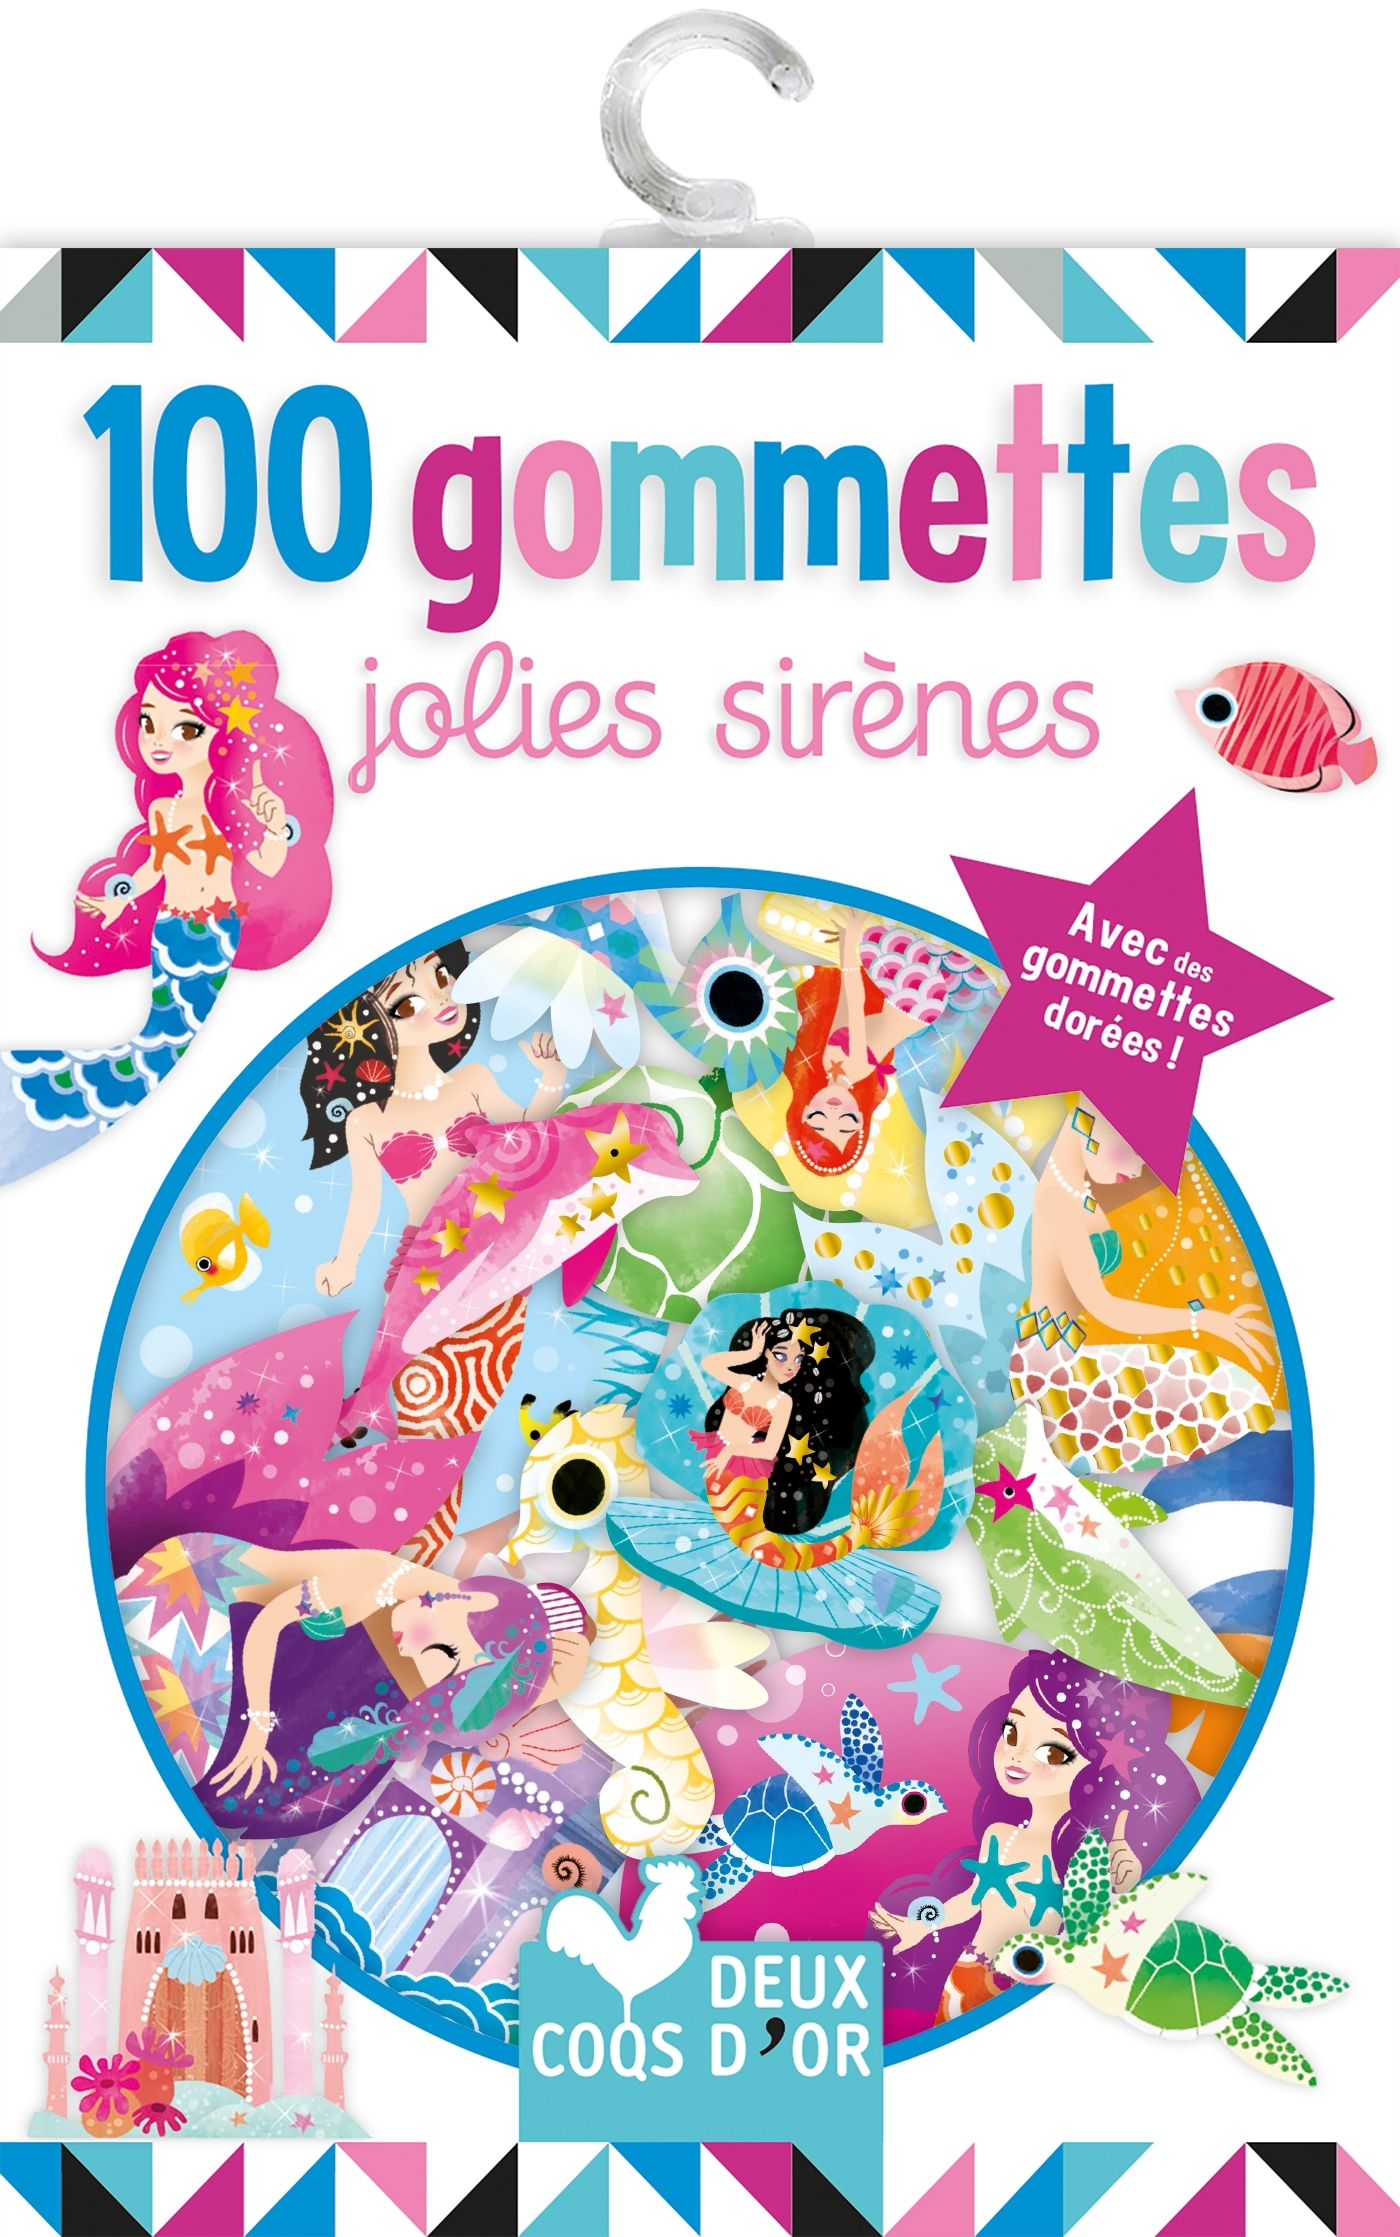 100 GOMMETTES - JOLIES SIRENES